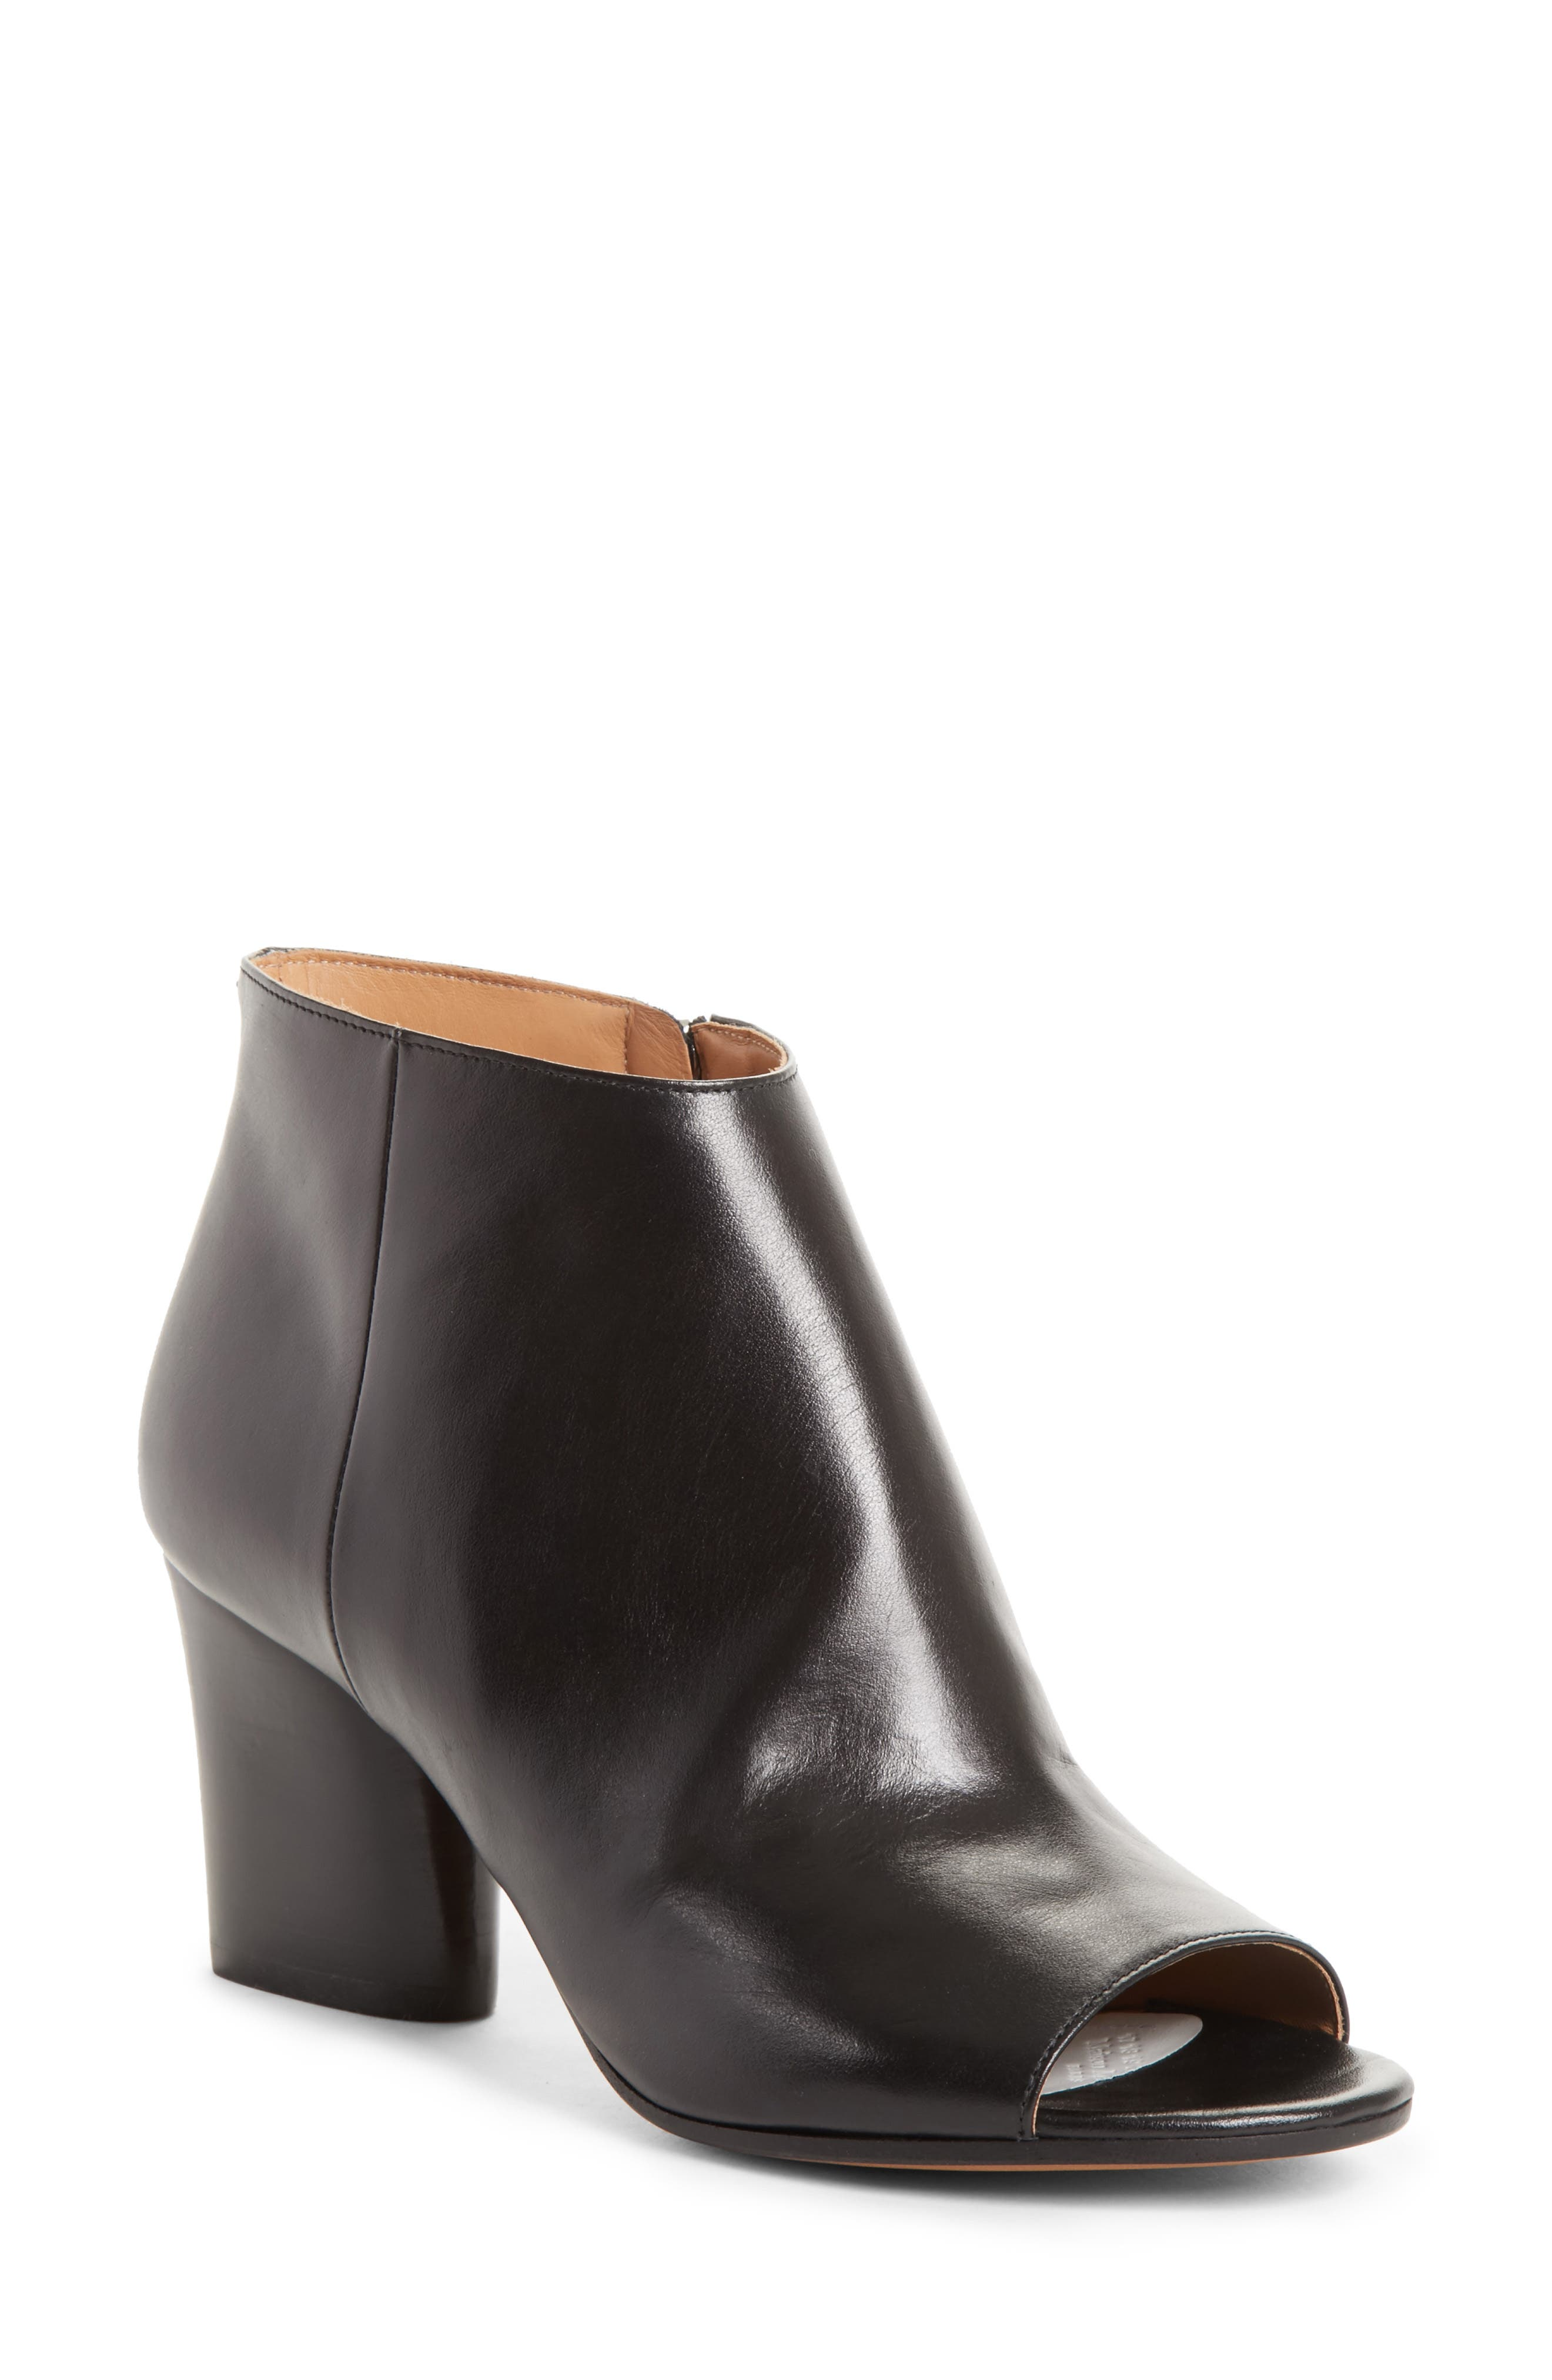 Maison Margiela Open Toe Ankle Boot (Women)